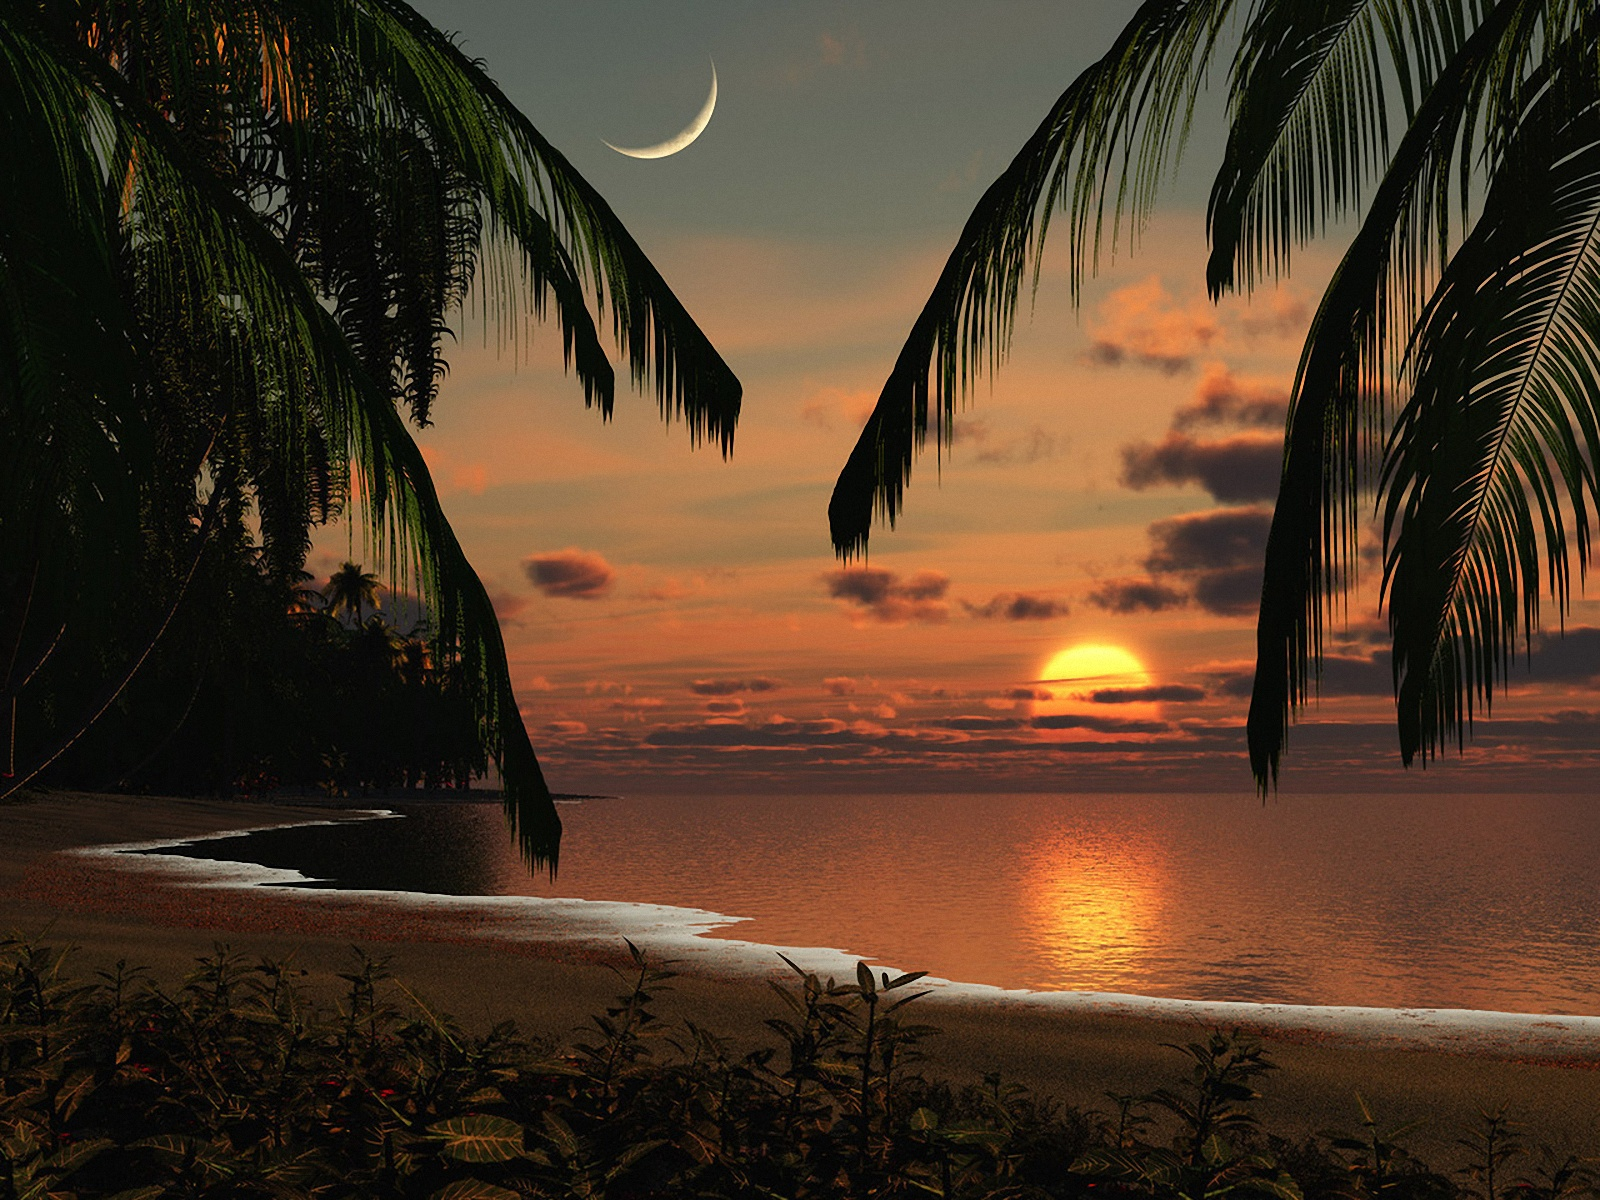 Hd Tropical Island Beach Paradise Wallpapers And Backgrounds: Wallpapernarium: Wallpapers De Atardeceres